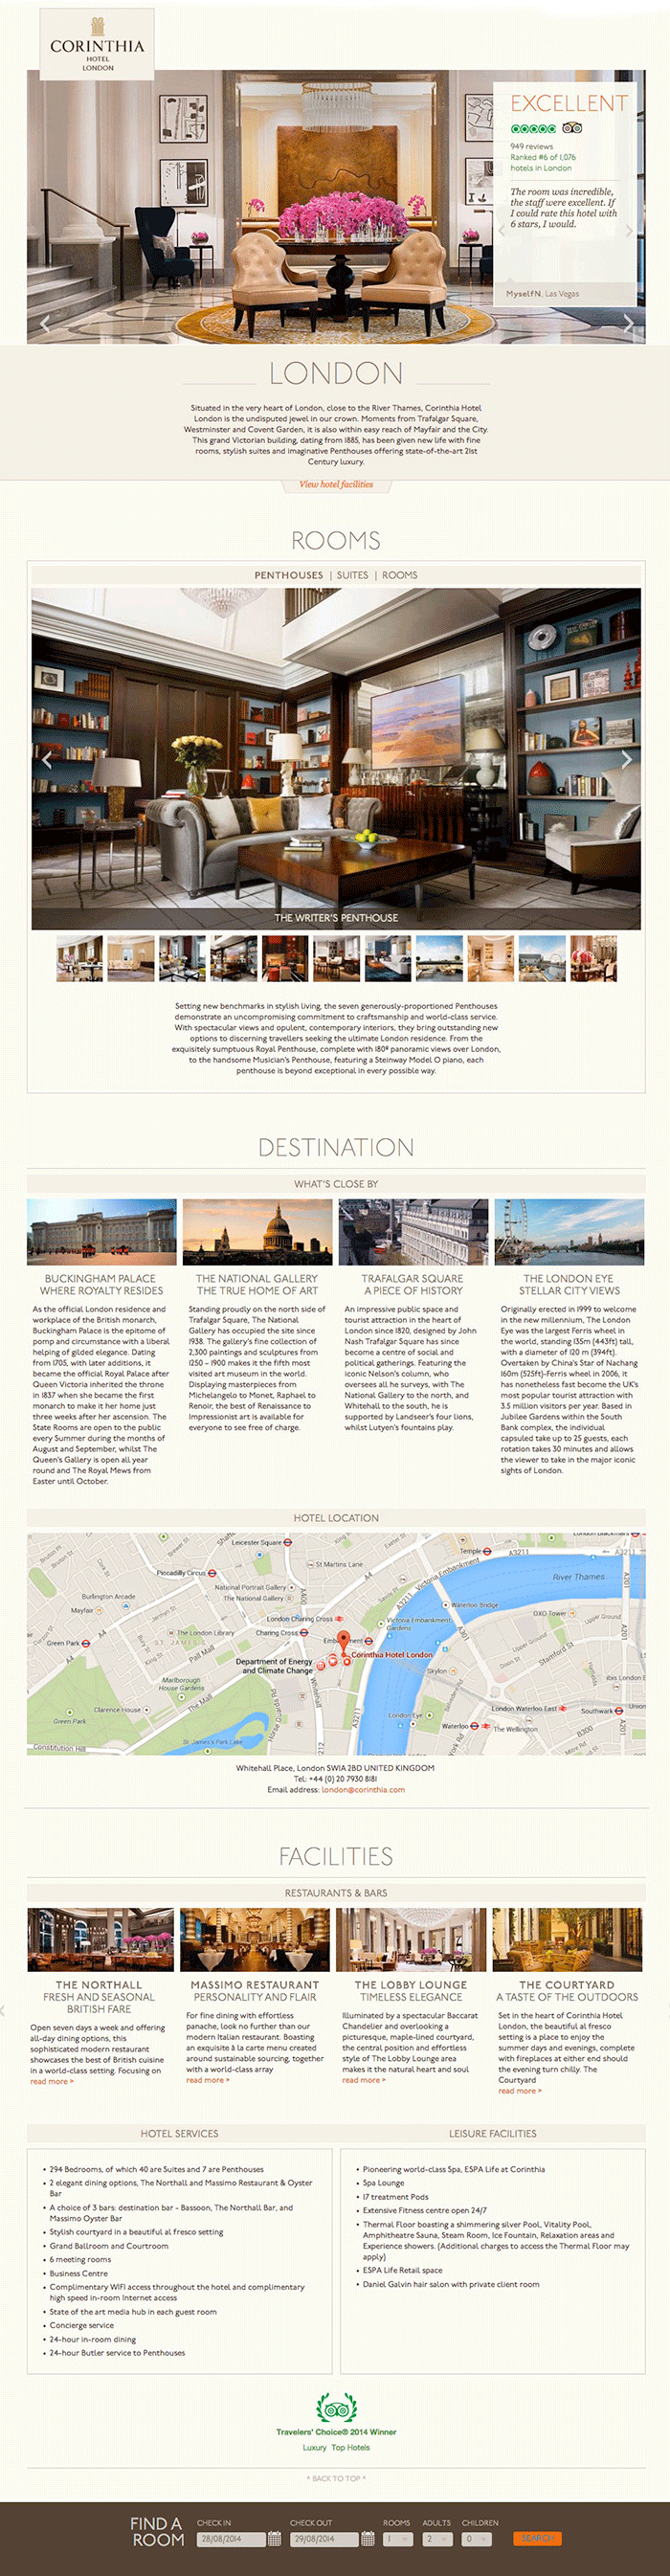 Landing page Corinthia Hotels international